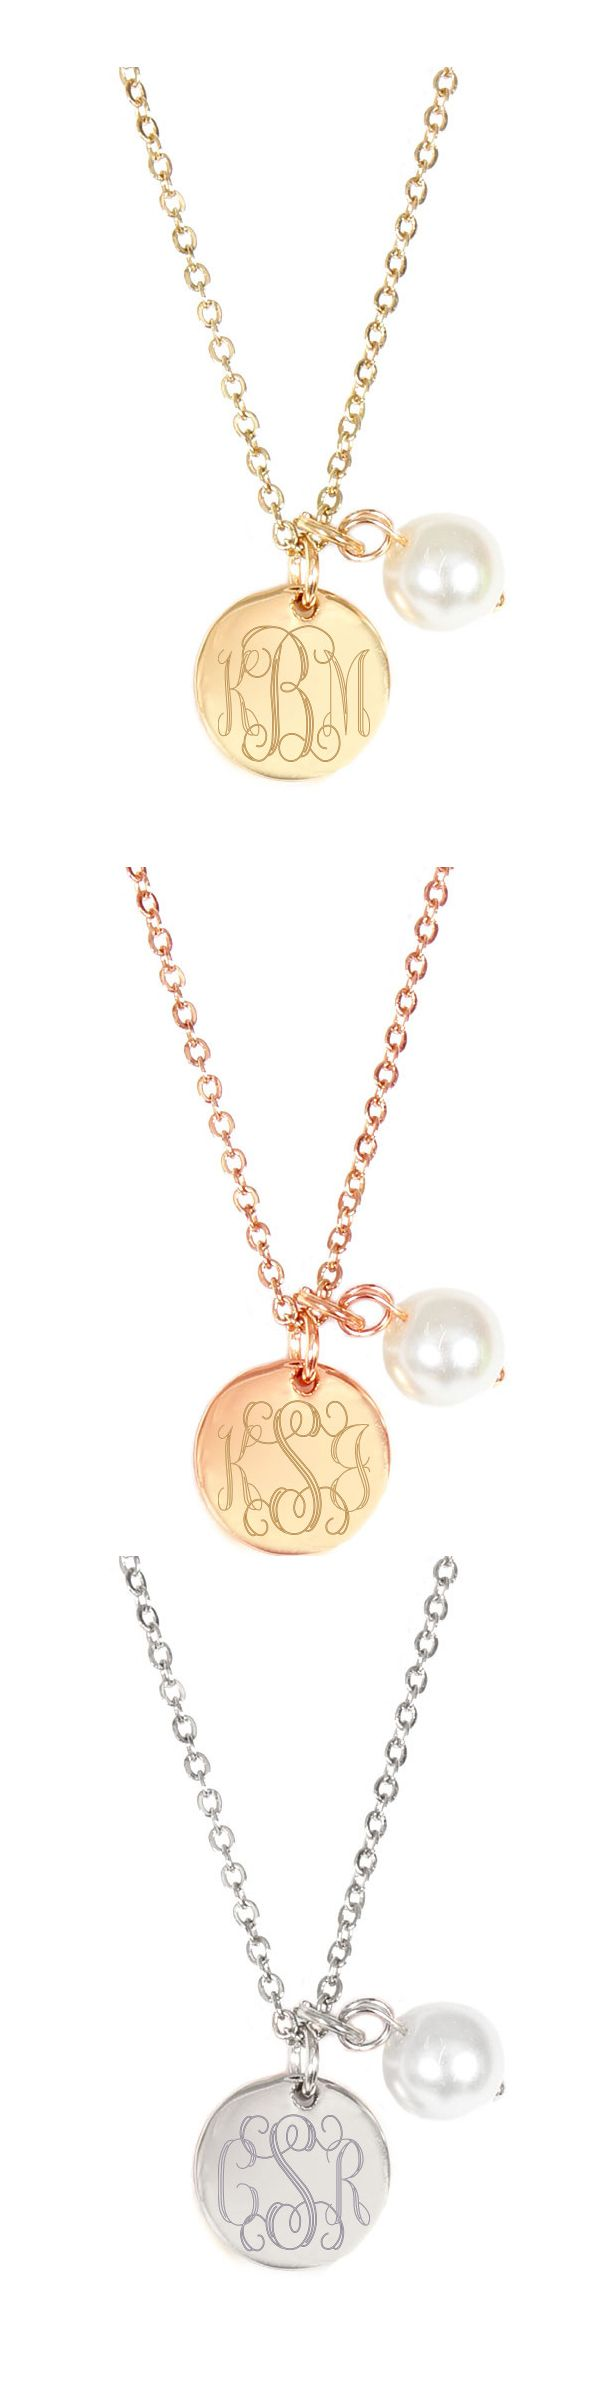 Monogrammed Simply Sweet Pearl Necklace  Available In Silver, Gold Or Rose  Gold Tones!